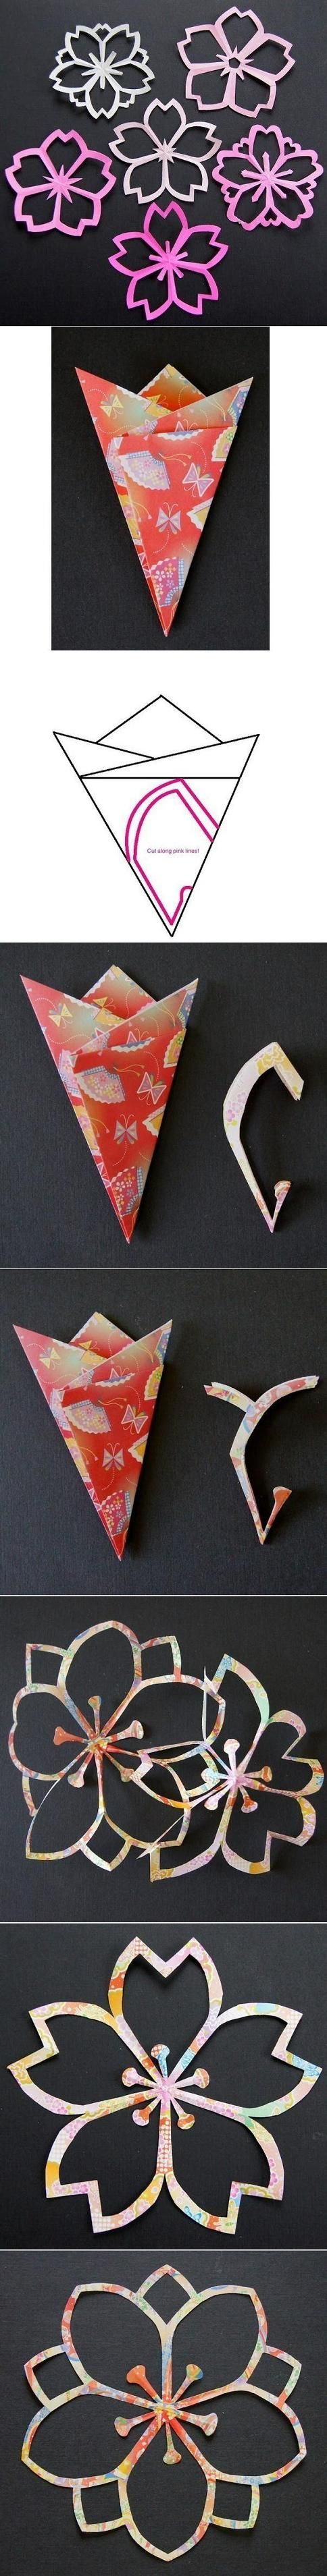 {DIY Paper Flower Cutting}